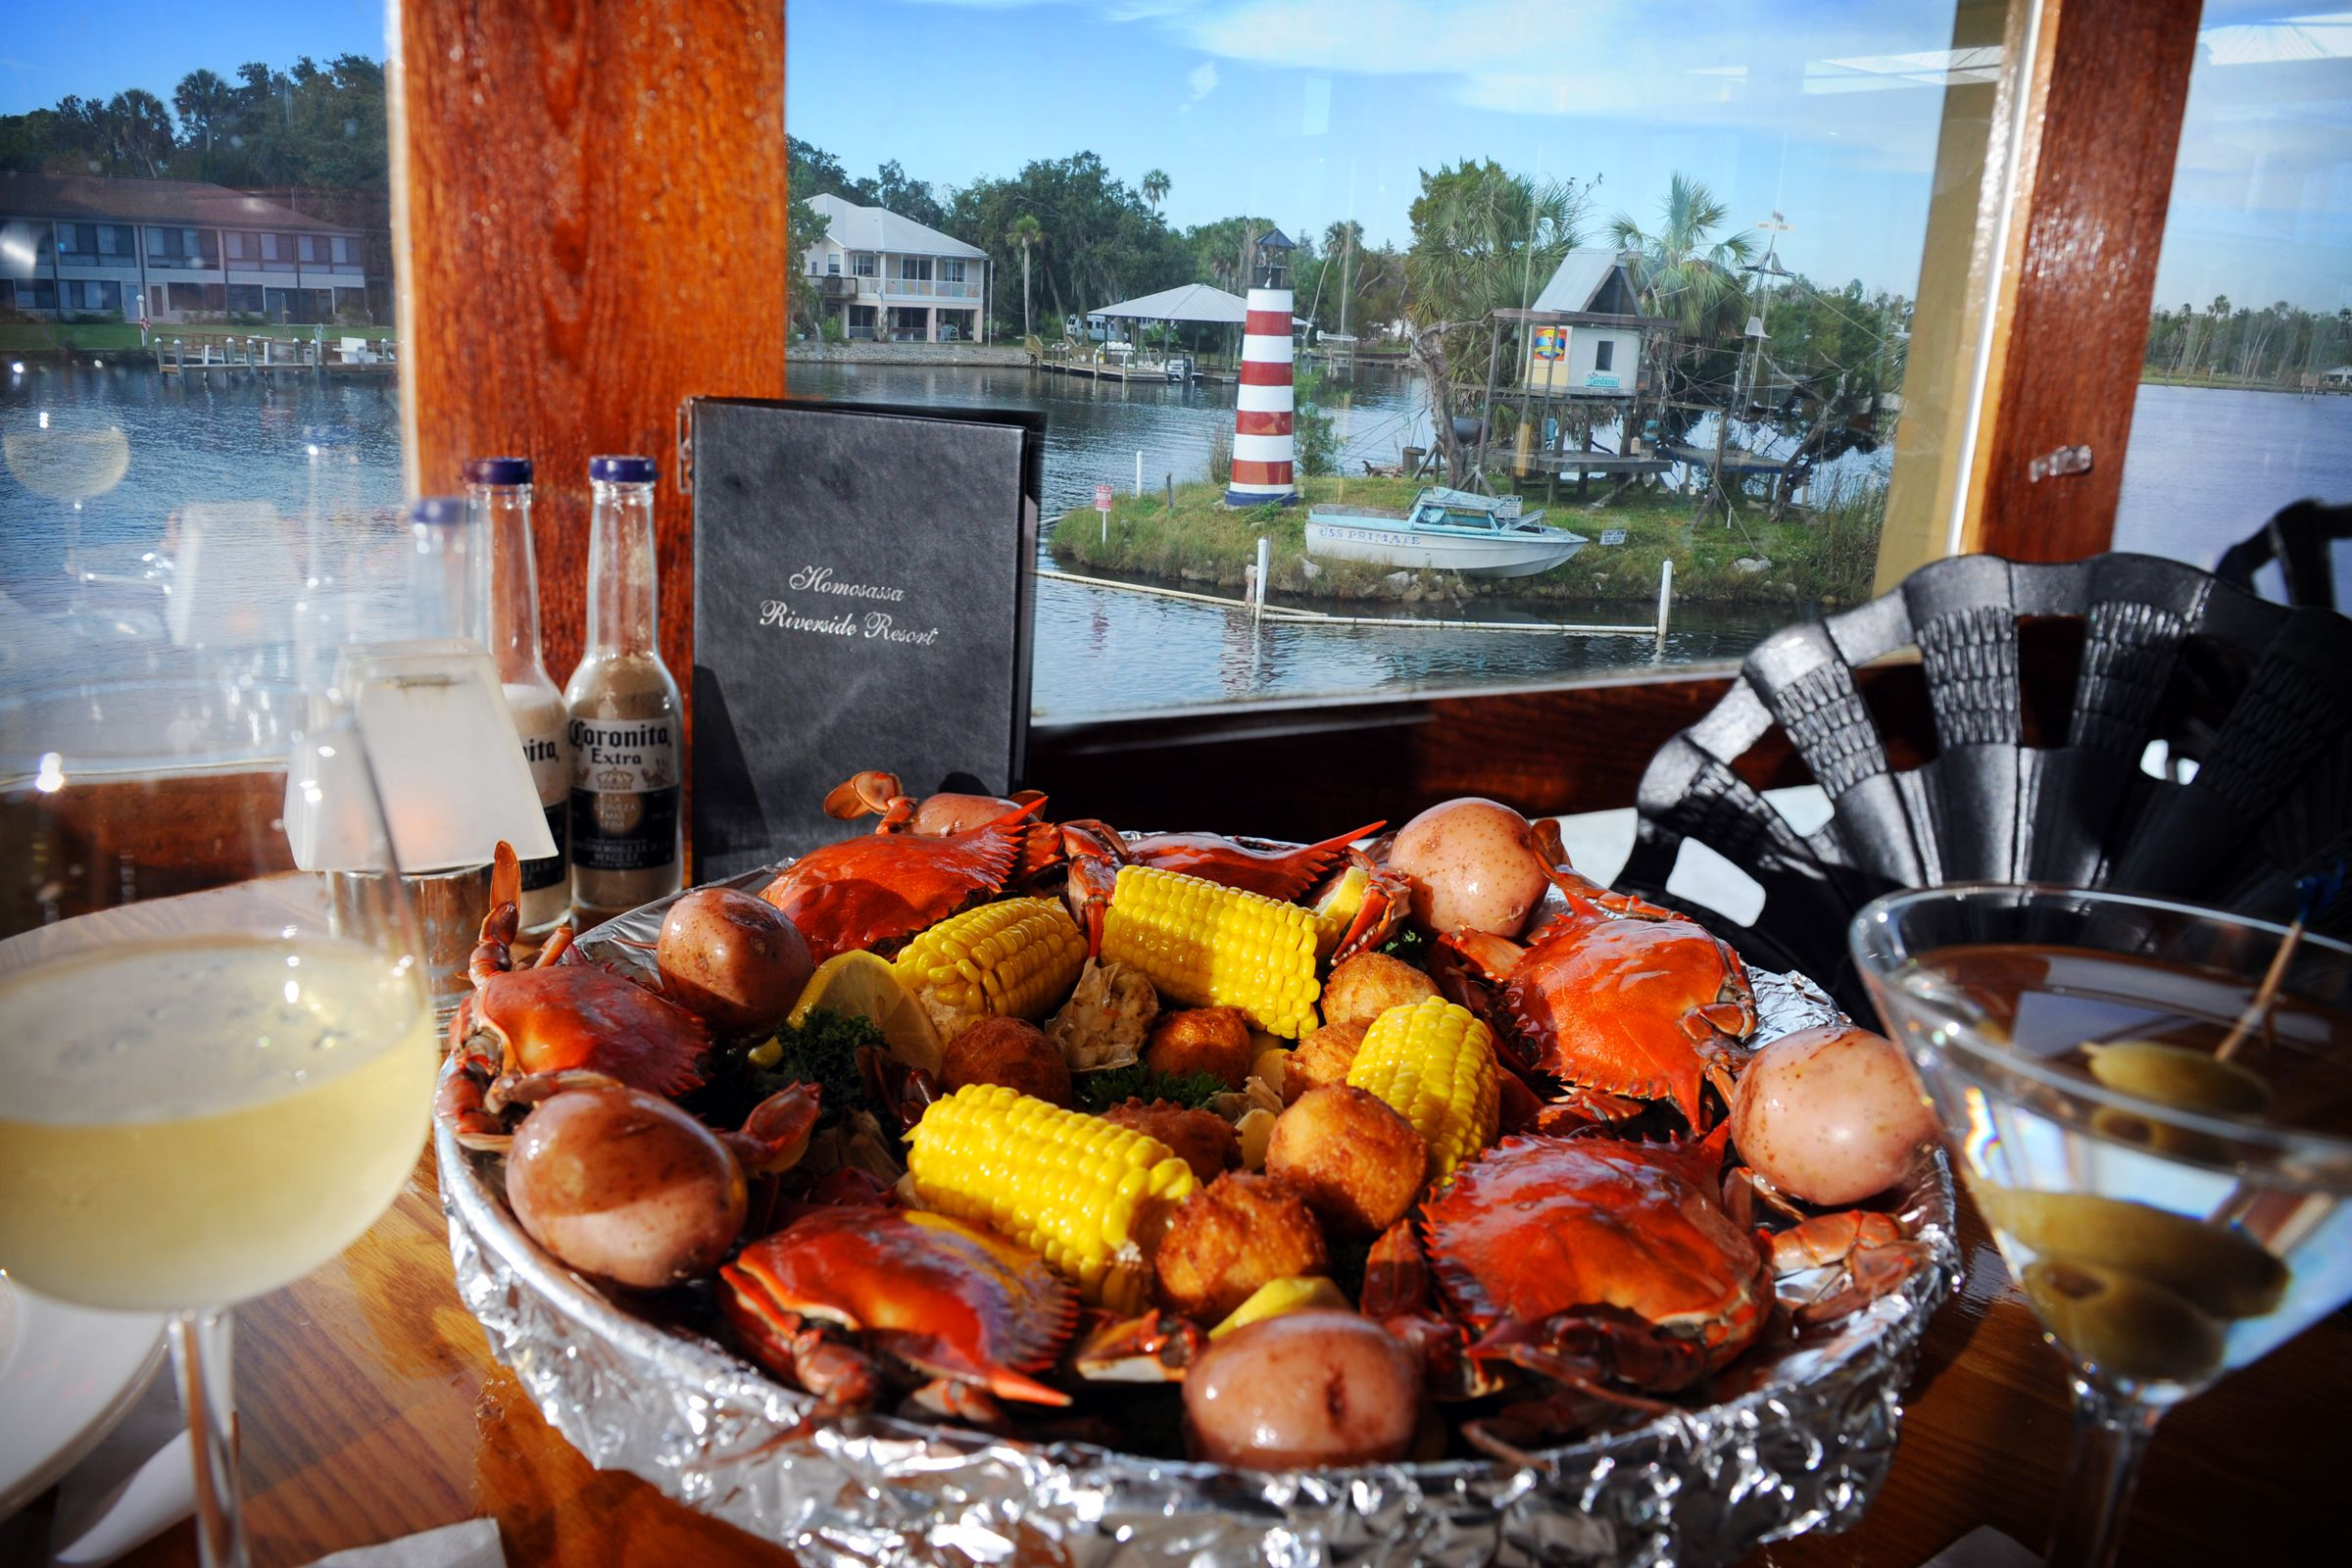 Restaurant with a view riverside crab house yardarm lounge monkey island homosassa